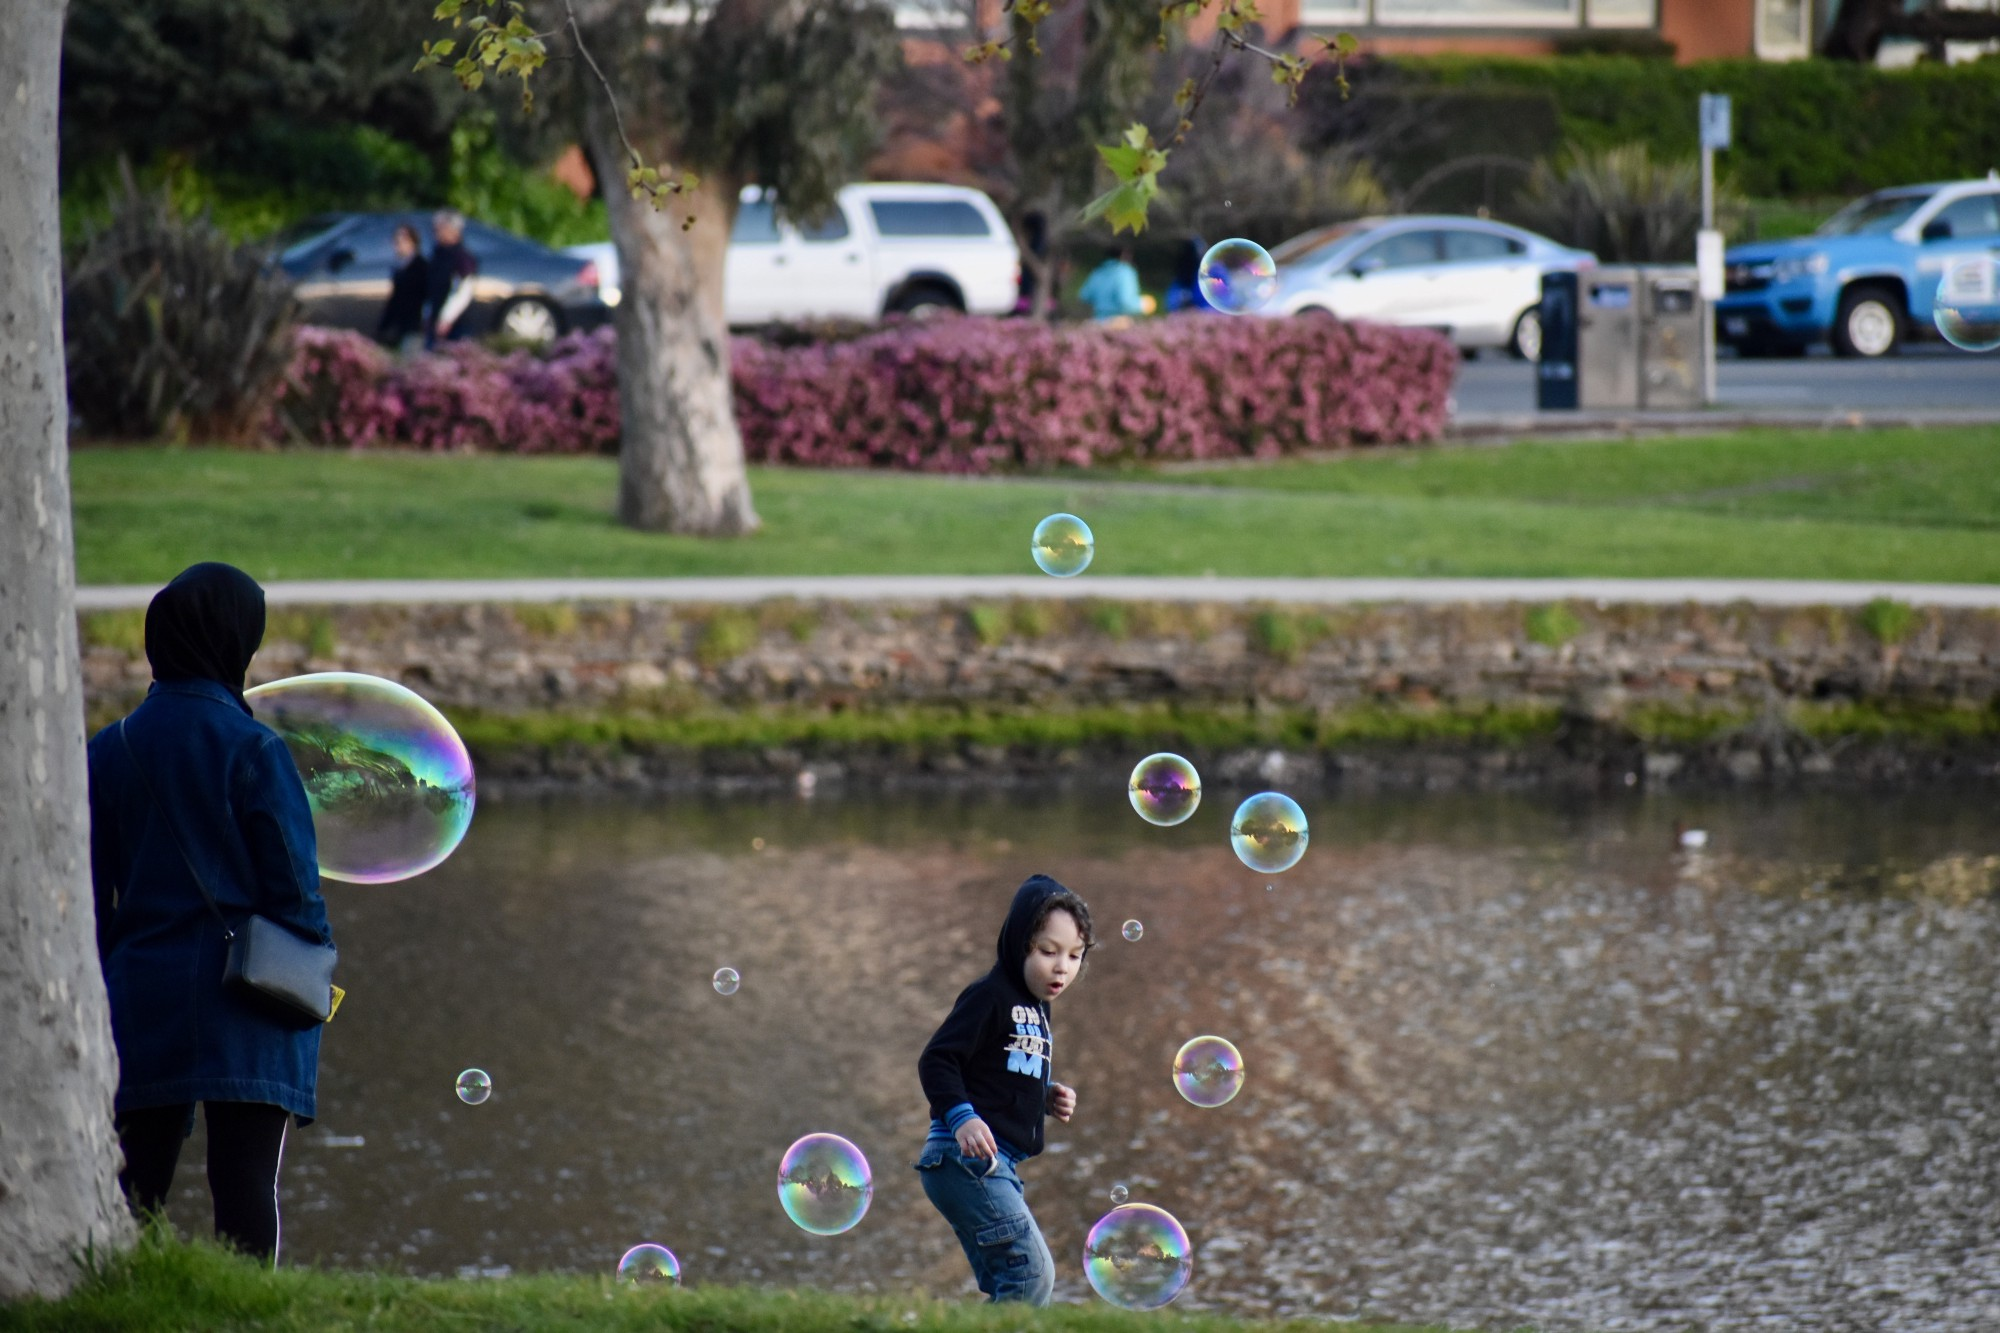 A child plays with large soap bubbles on a lake shore.